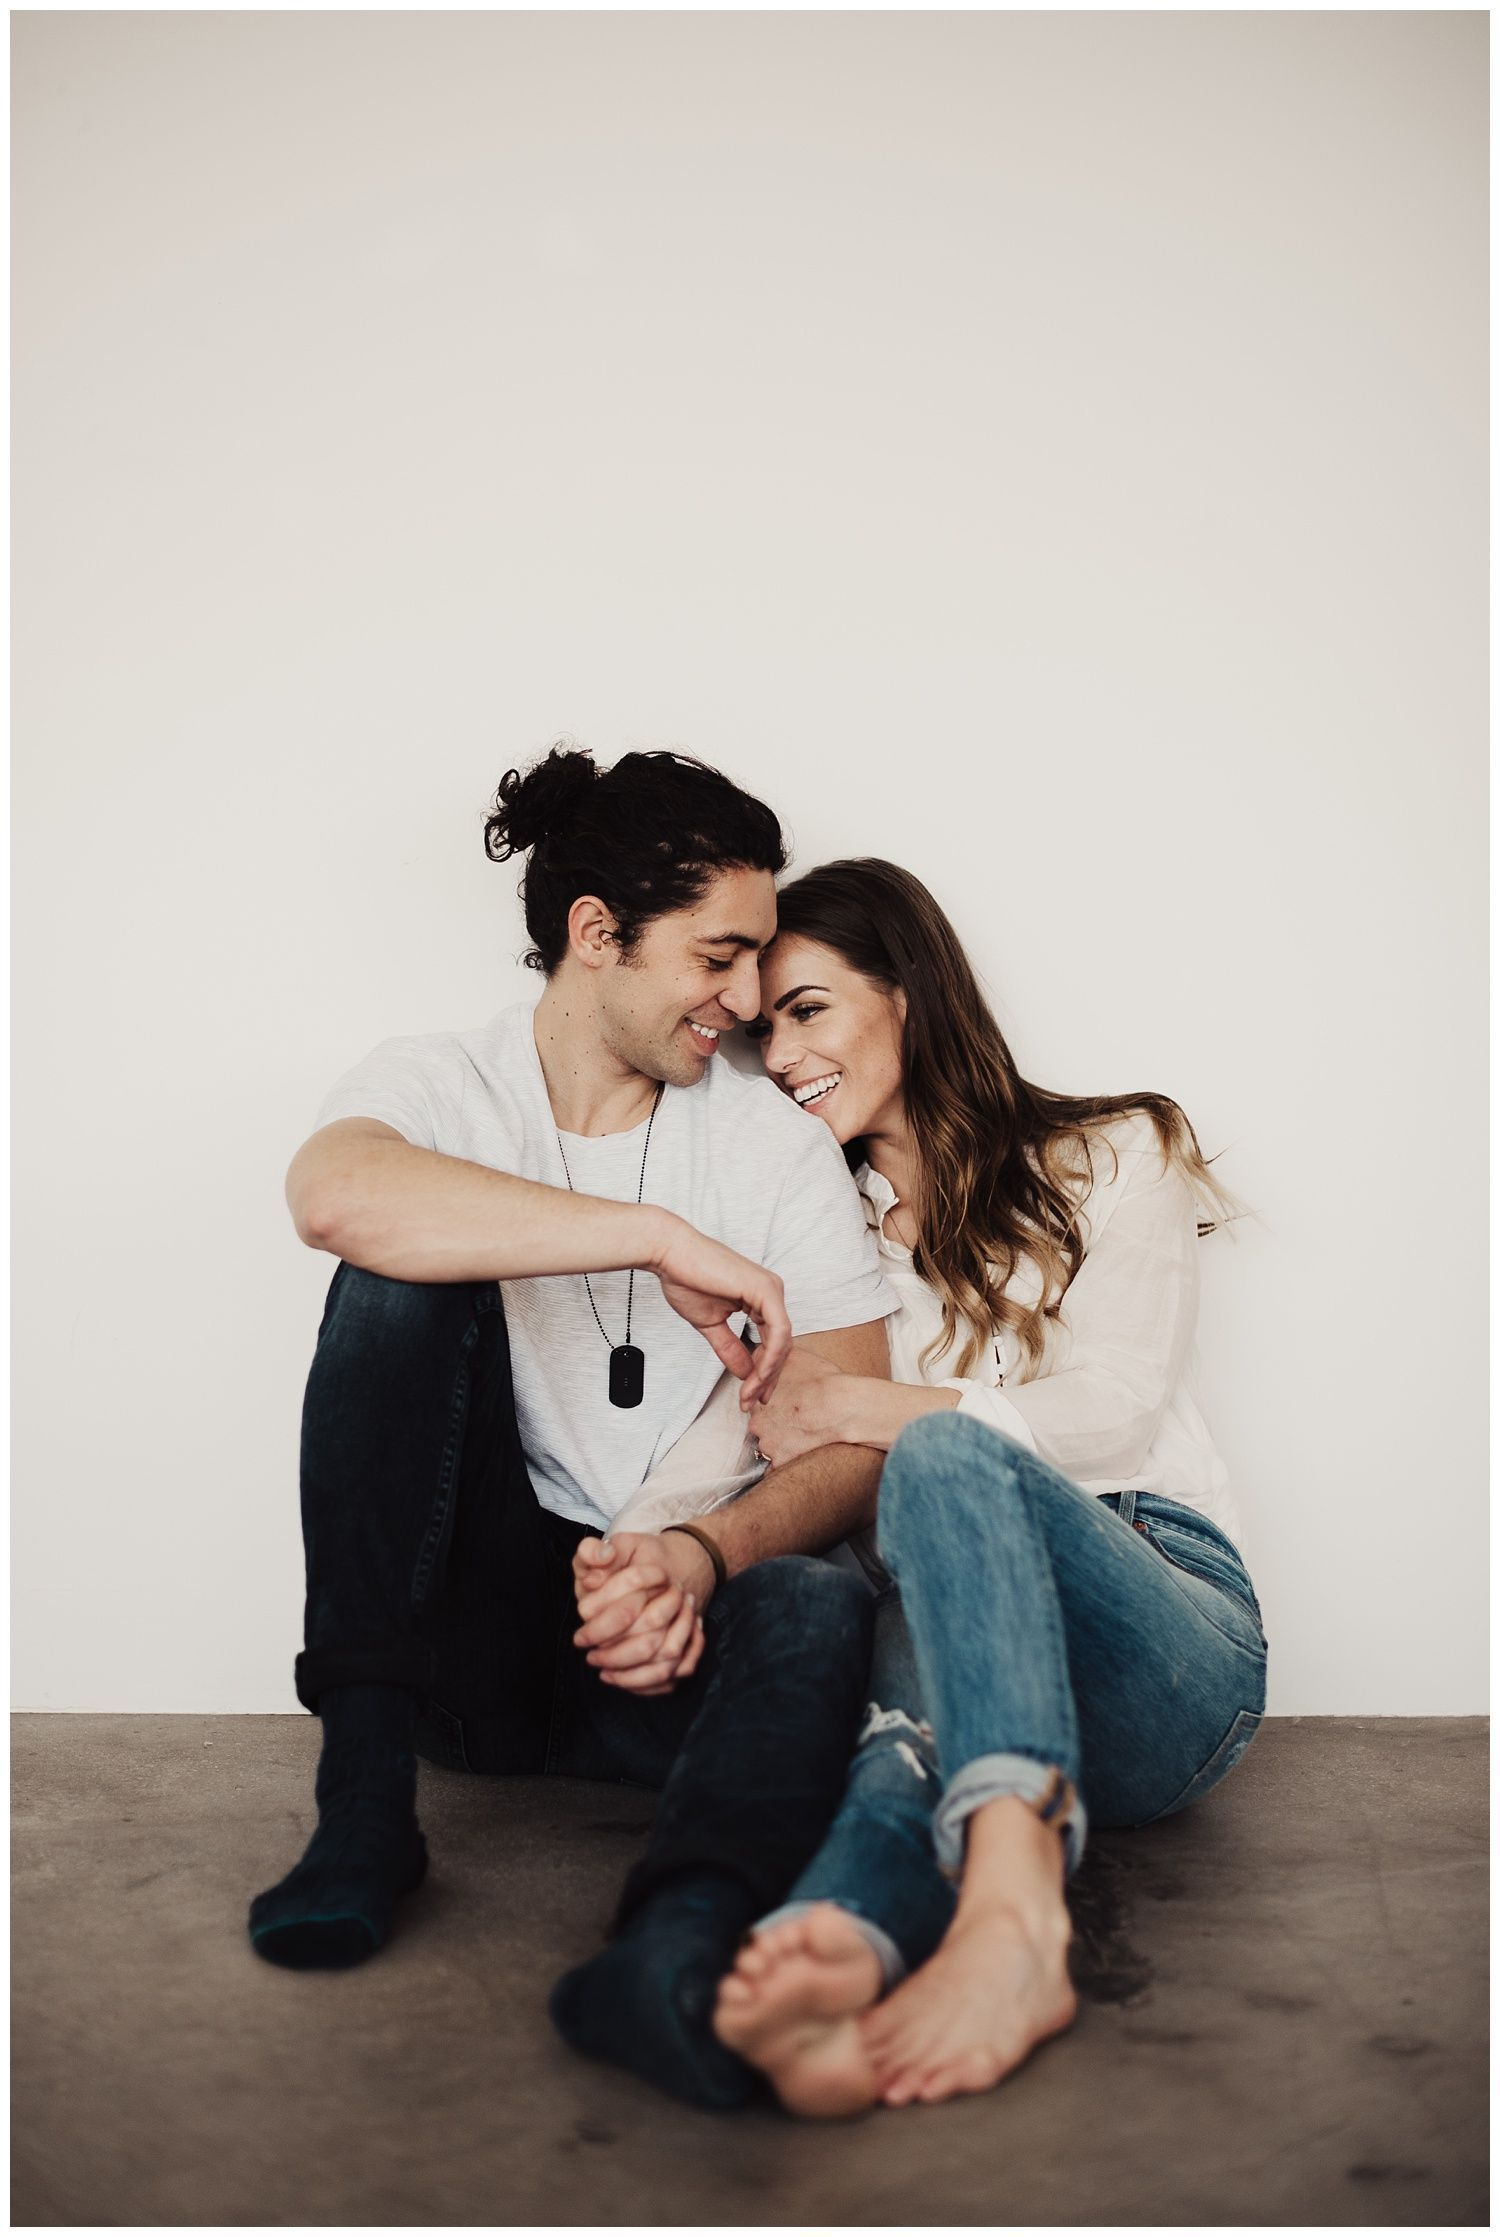 Eden Strader Photo, Miesh Studio, Studio engagements, engagement ...